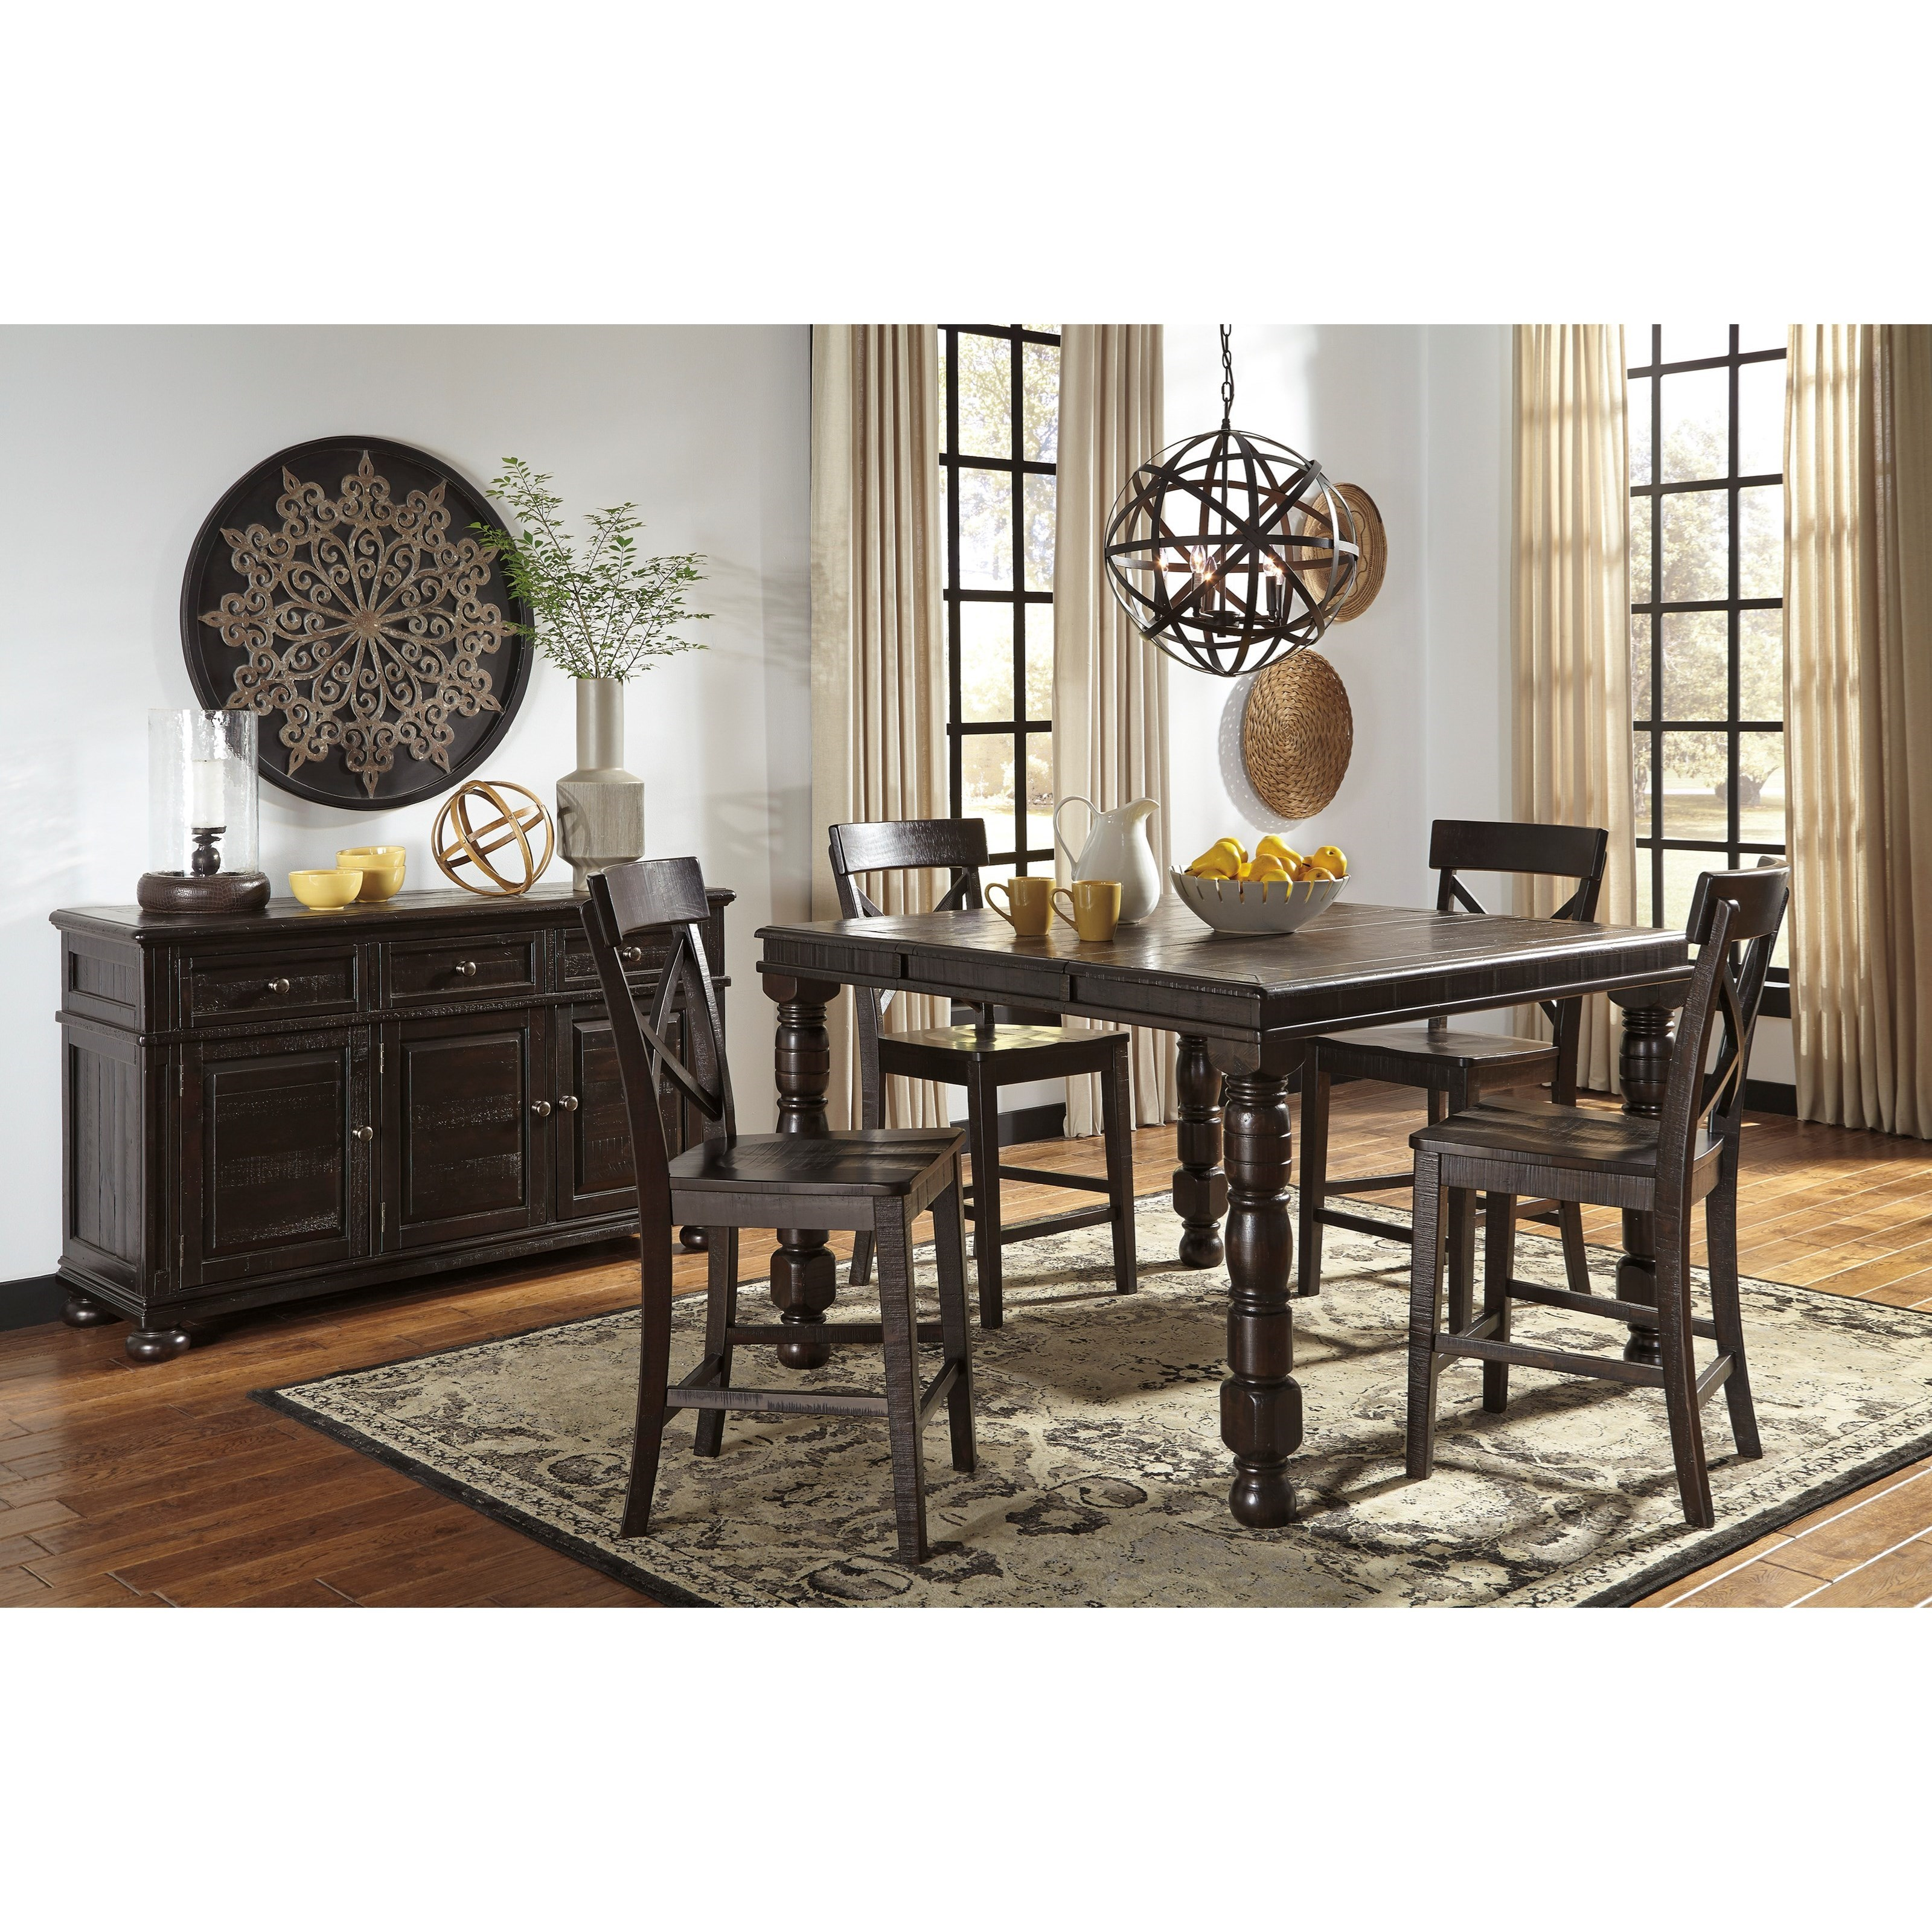 Signature Design by Ashley Gerlane Casual Dining Room Group - Item Number: D657 Dining Room Group 6